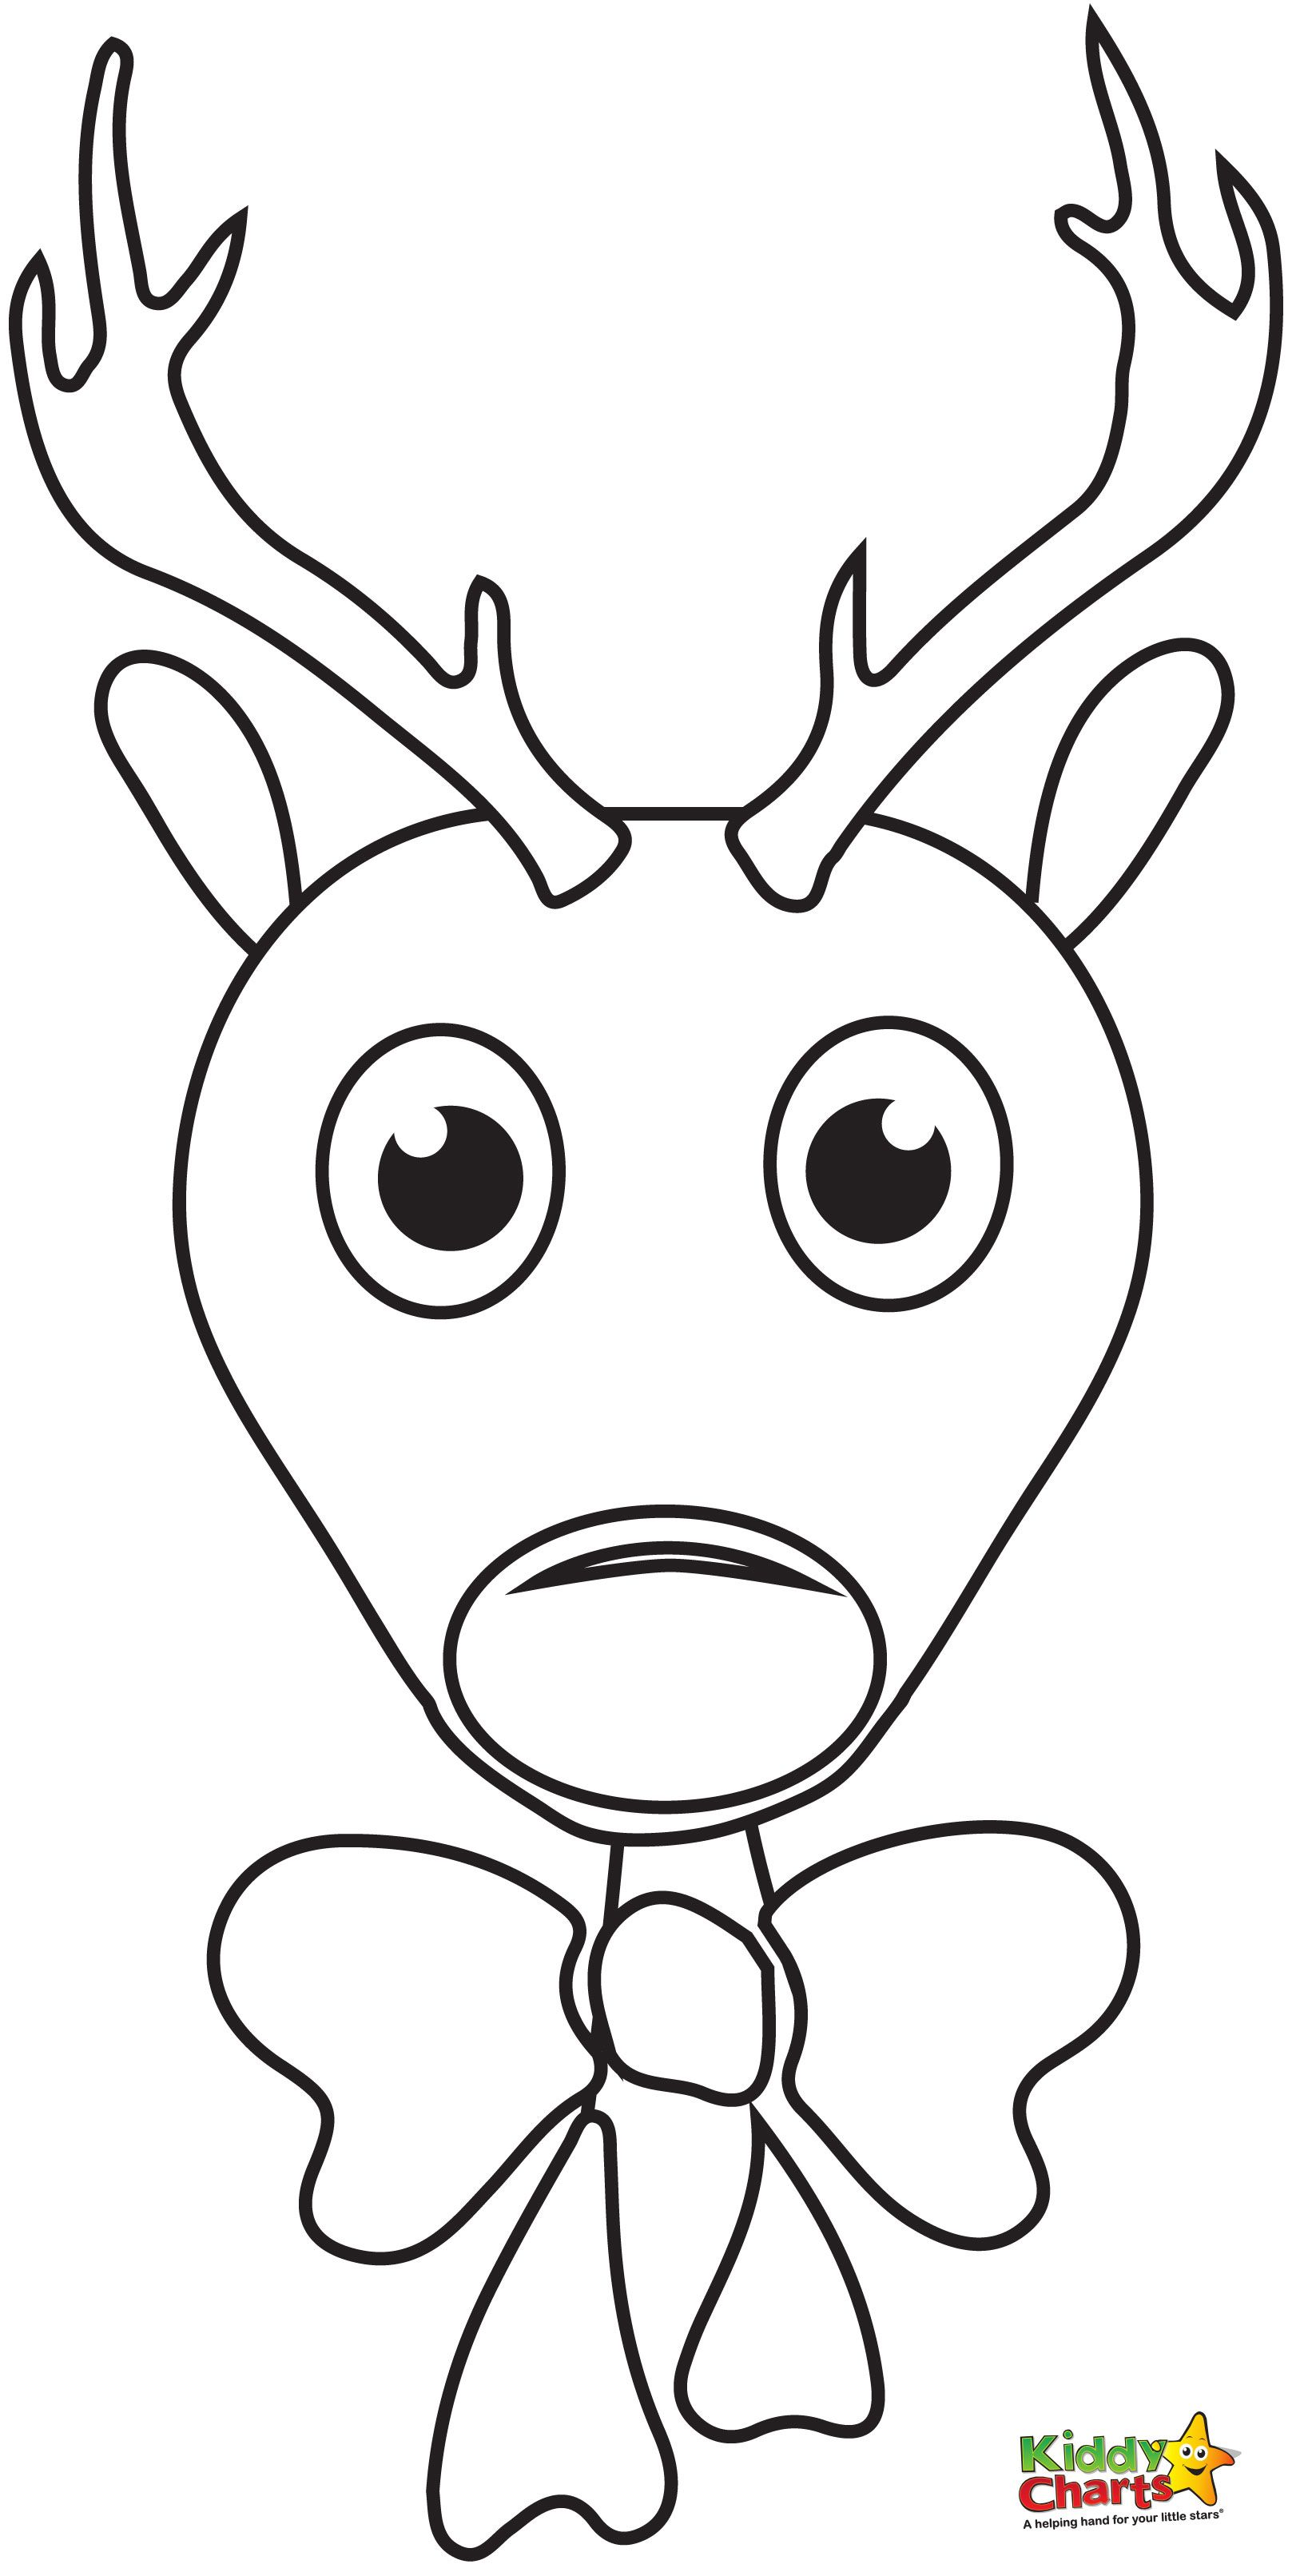 Rudolph Coloring Pages | Ausmalbilder, Applikationen und Zeichnungen